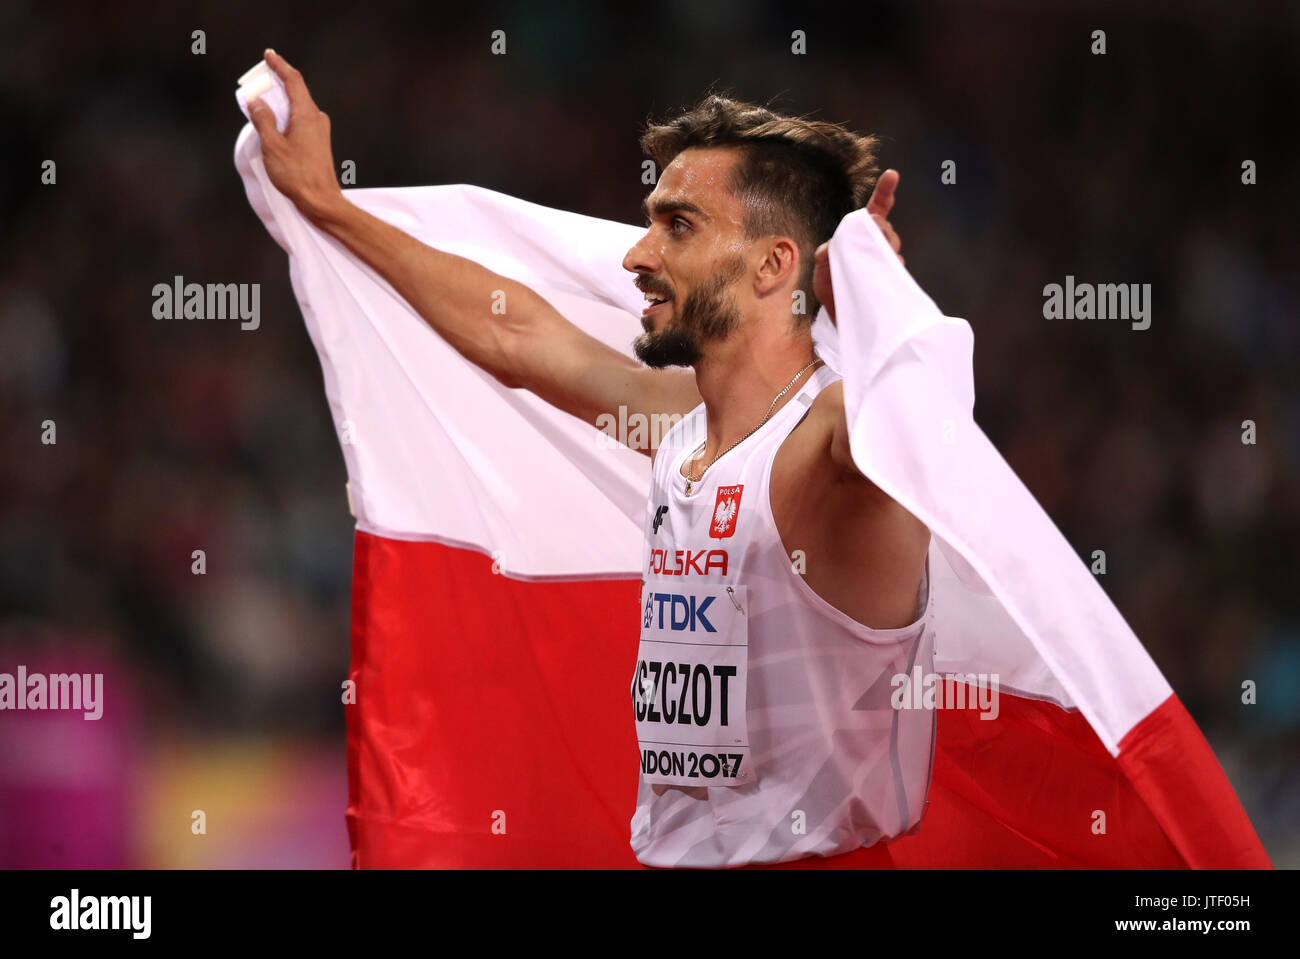 Poland's Adam Kszczot celebrates silver in the Men's 800m Final during day five of the 2017 IAAF World Championships at the London Stadium. - Stock Image